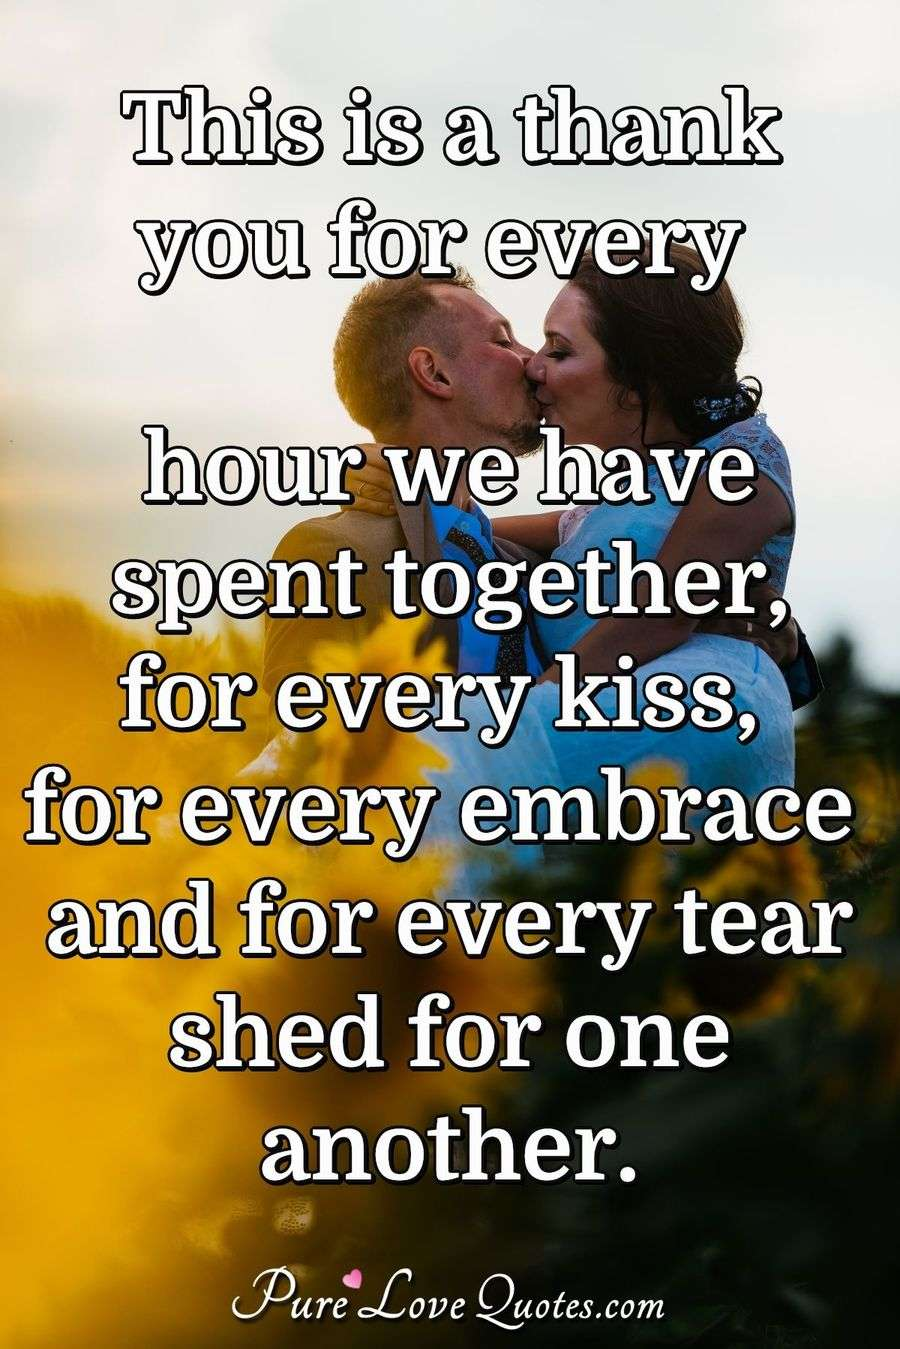 Thanks To Lover Quotes: This Is A Thank You For Every Hour We Have Spent Together